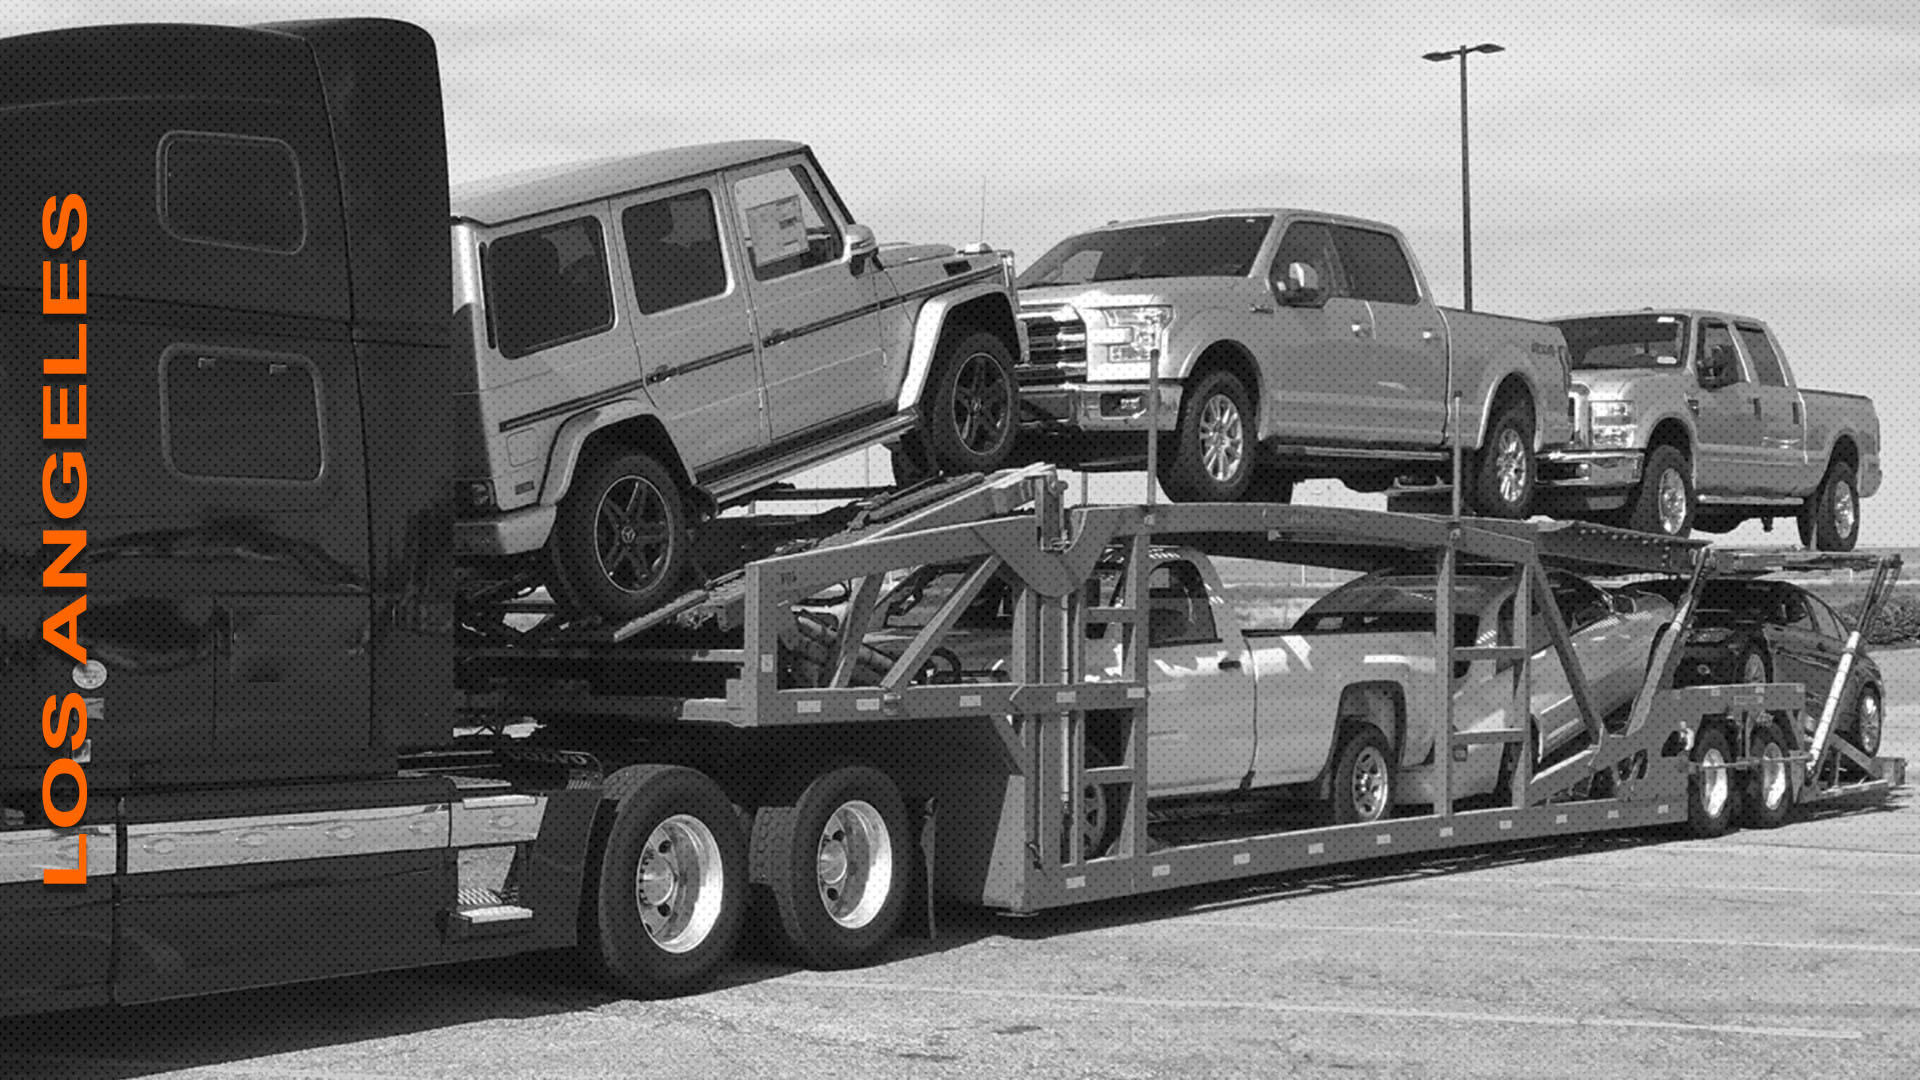 Nationwide car shipping made easy. We transport vehicles in all major cities of the US. Los Angeles, San Diego, San Francisco, Oregon, Seattle, Las Vegas, Denver, Phoenix, Chicago, Cleveland, New York, Boston, Philadelphia, Baltimore, Richmond, Charlotte, Nashville, Atlanta, Jacksonville, Tampa, Miami, New Orleans, Houston, Dallas, San Antonio, Austin, Jackson, Montgomery, Oklahoma City, Albuquerque, Kansas City, El Paso, Louisville, Cincinnati, Newark, Pittsburgh and others.